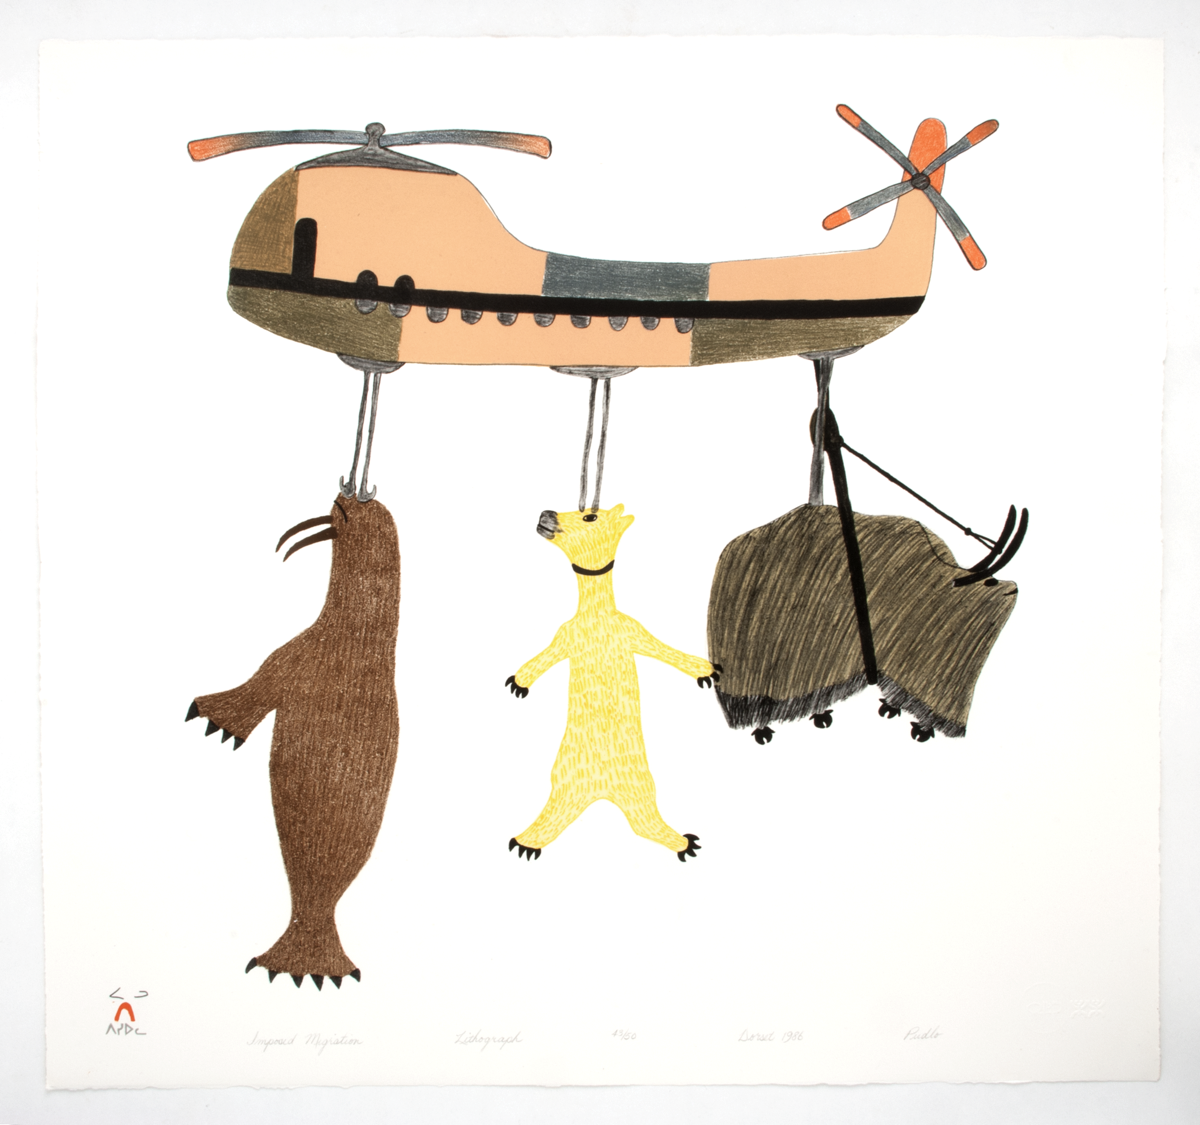 Lithograph titled 'Imposed Migration' by Pudlo Pudlat. The print shows a walrus, a polar bear, and a musk ox suspended from an orange chinook helicopter